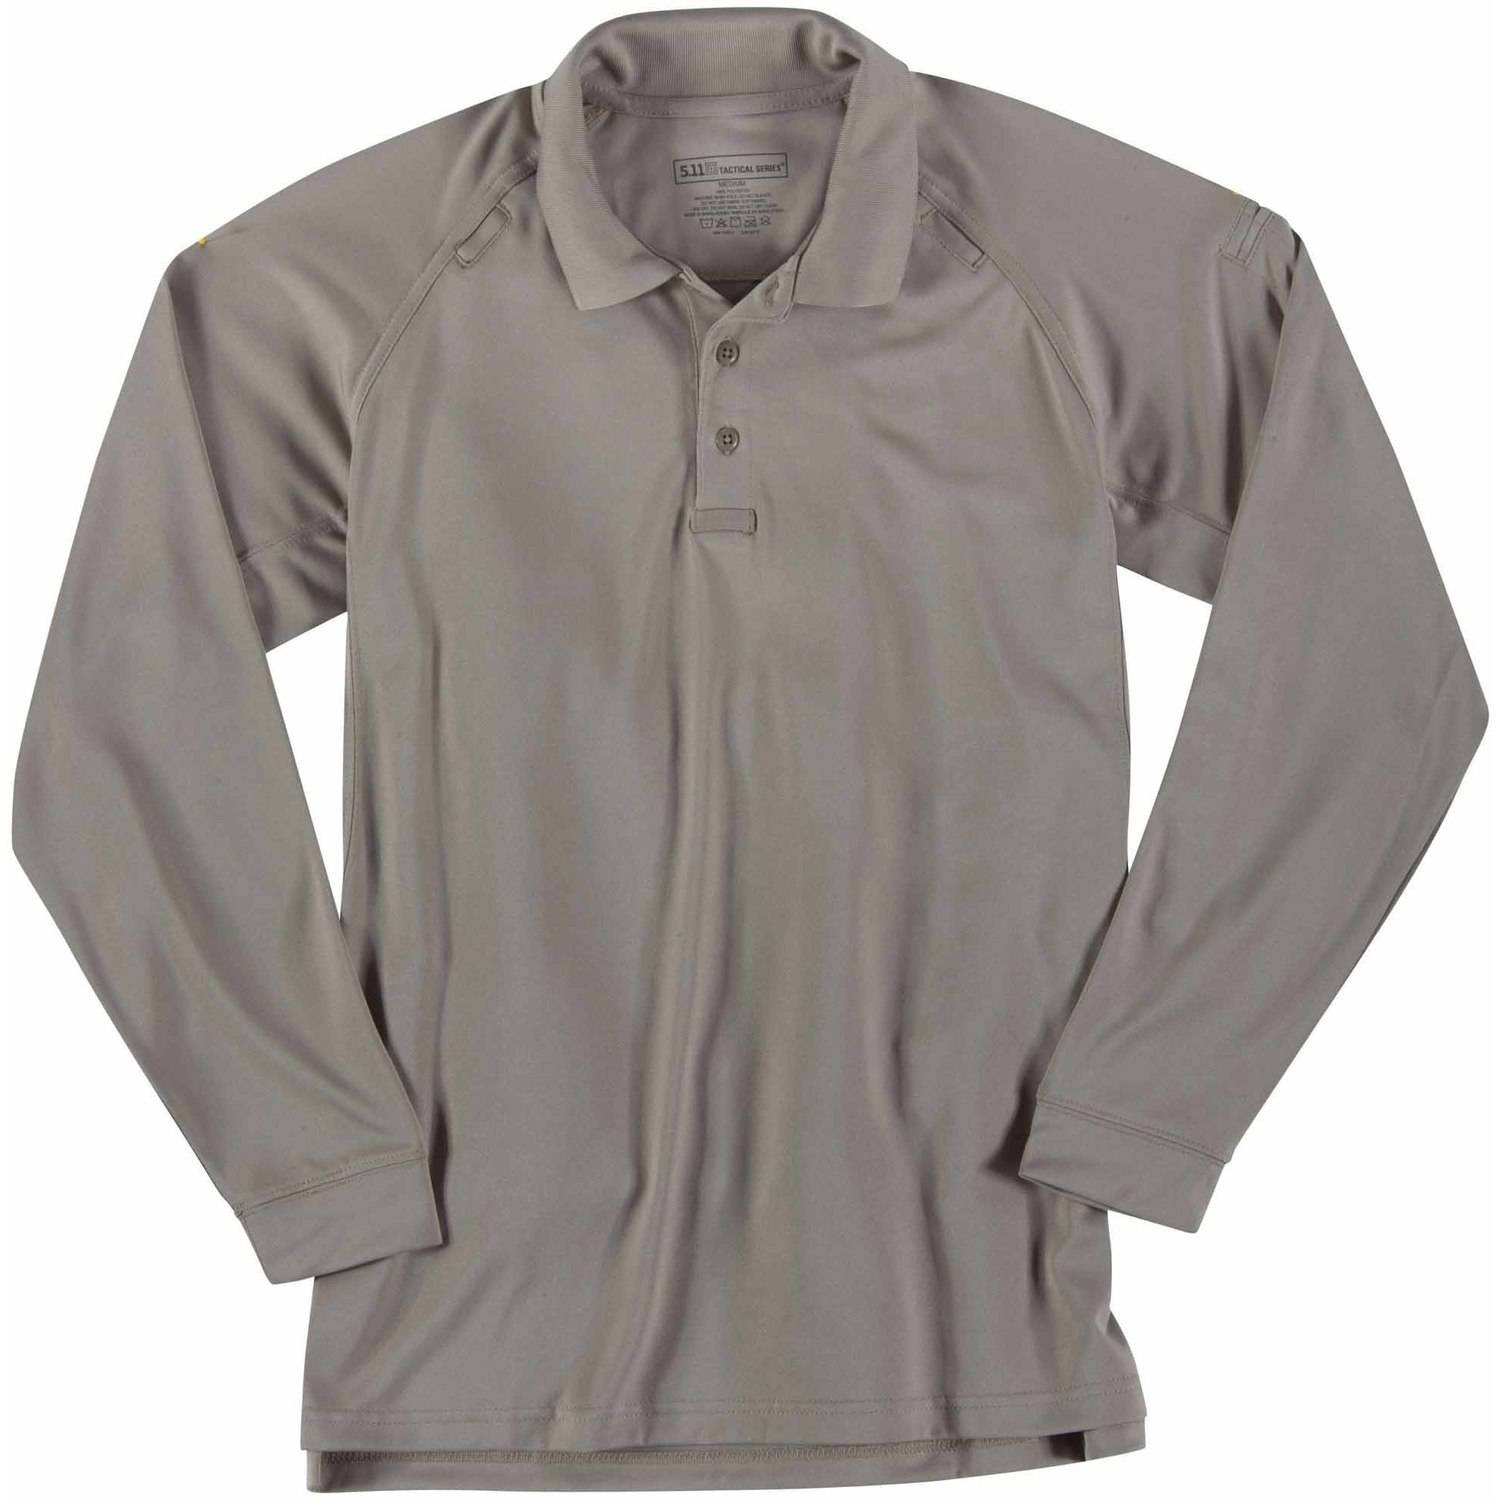 Performance Long Sleeve Polo Shirt, Silver Tan